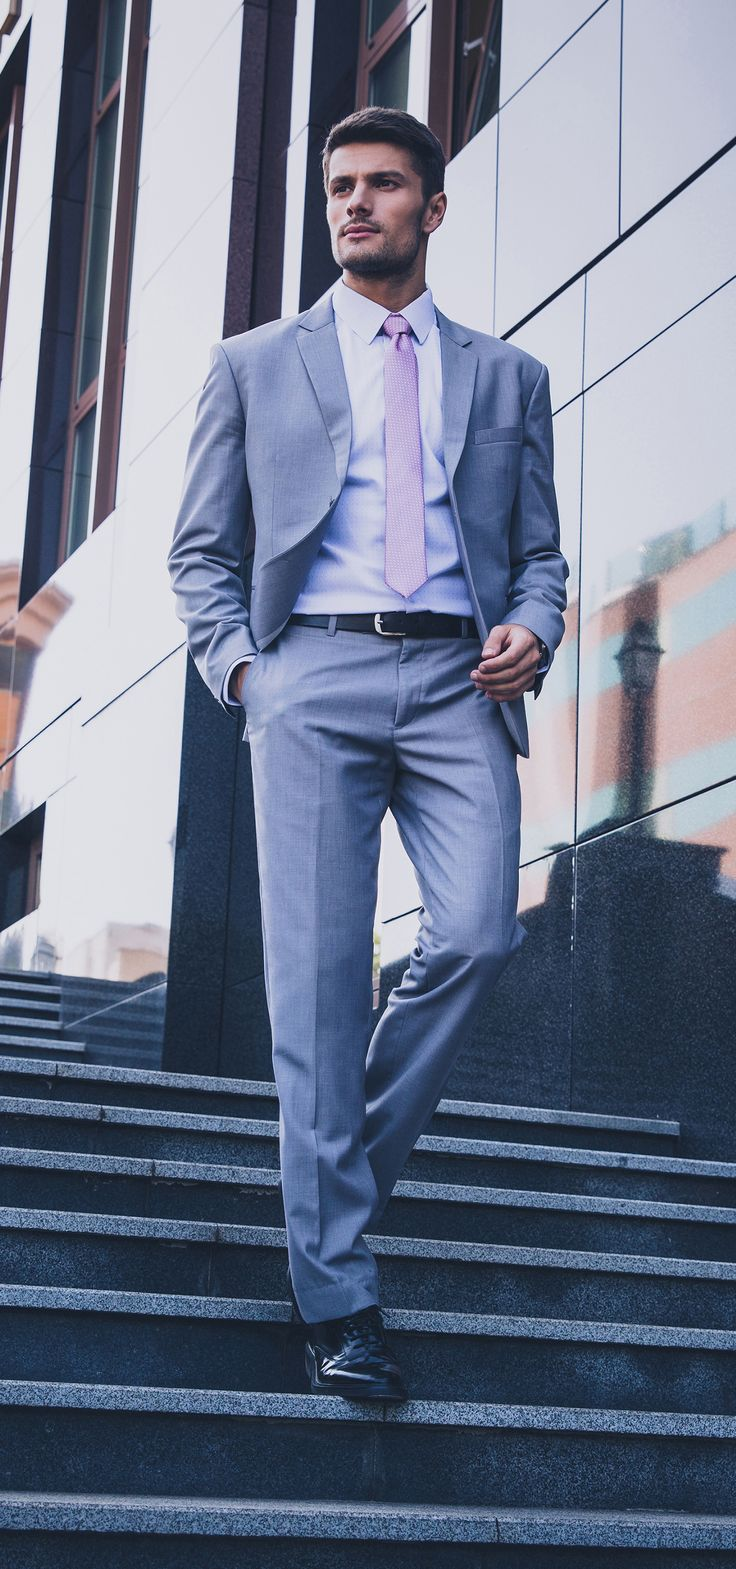 how to get your suit tailored